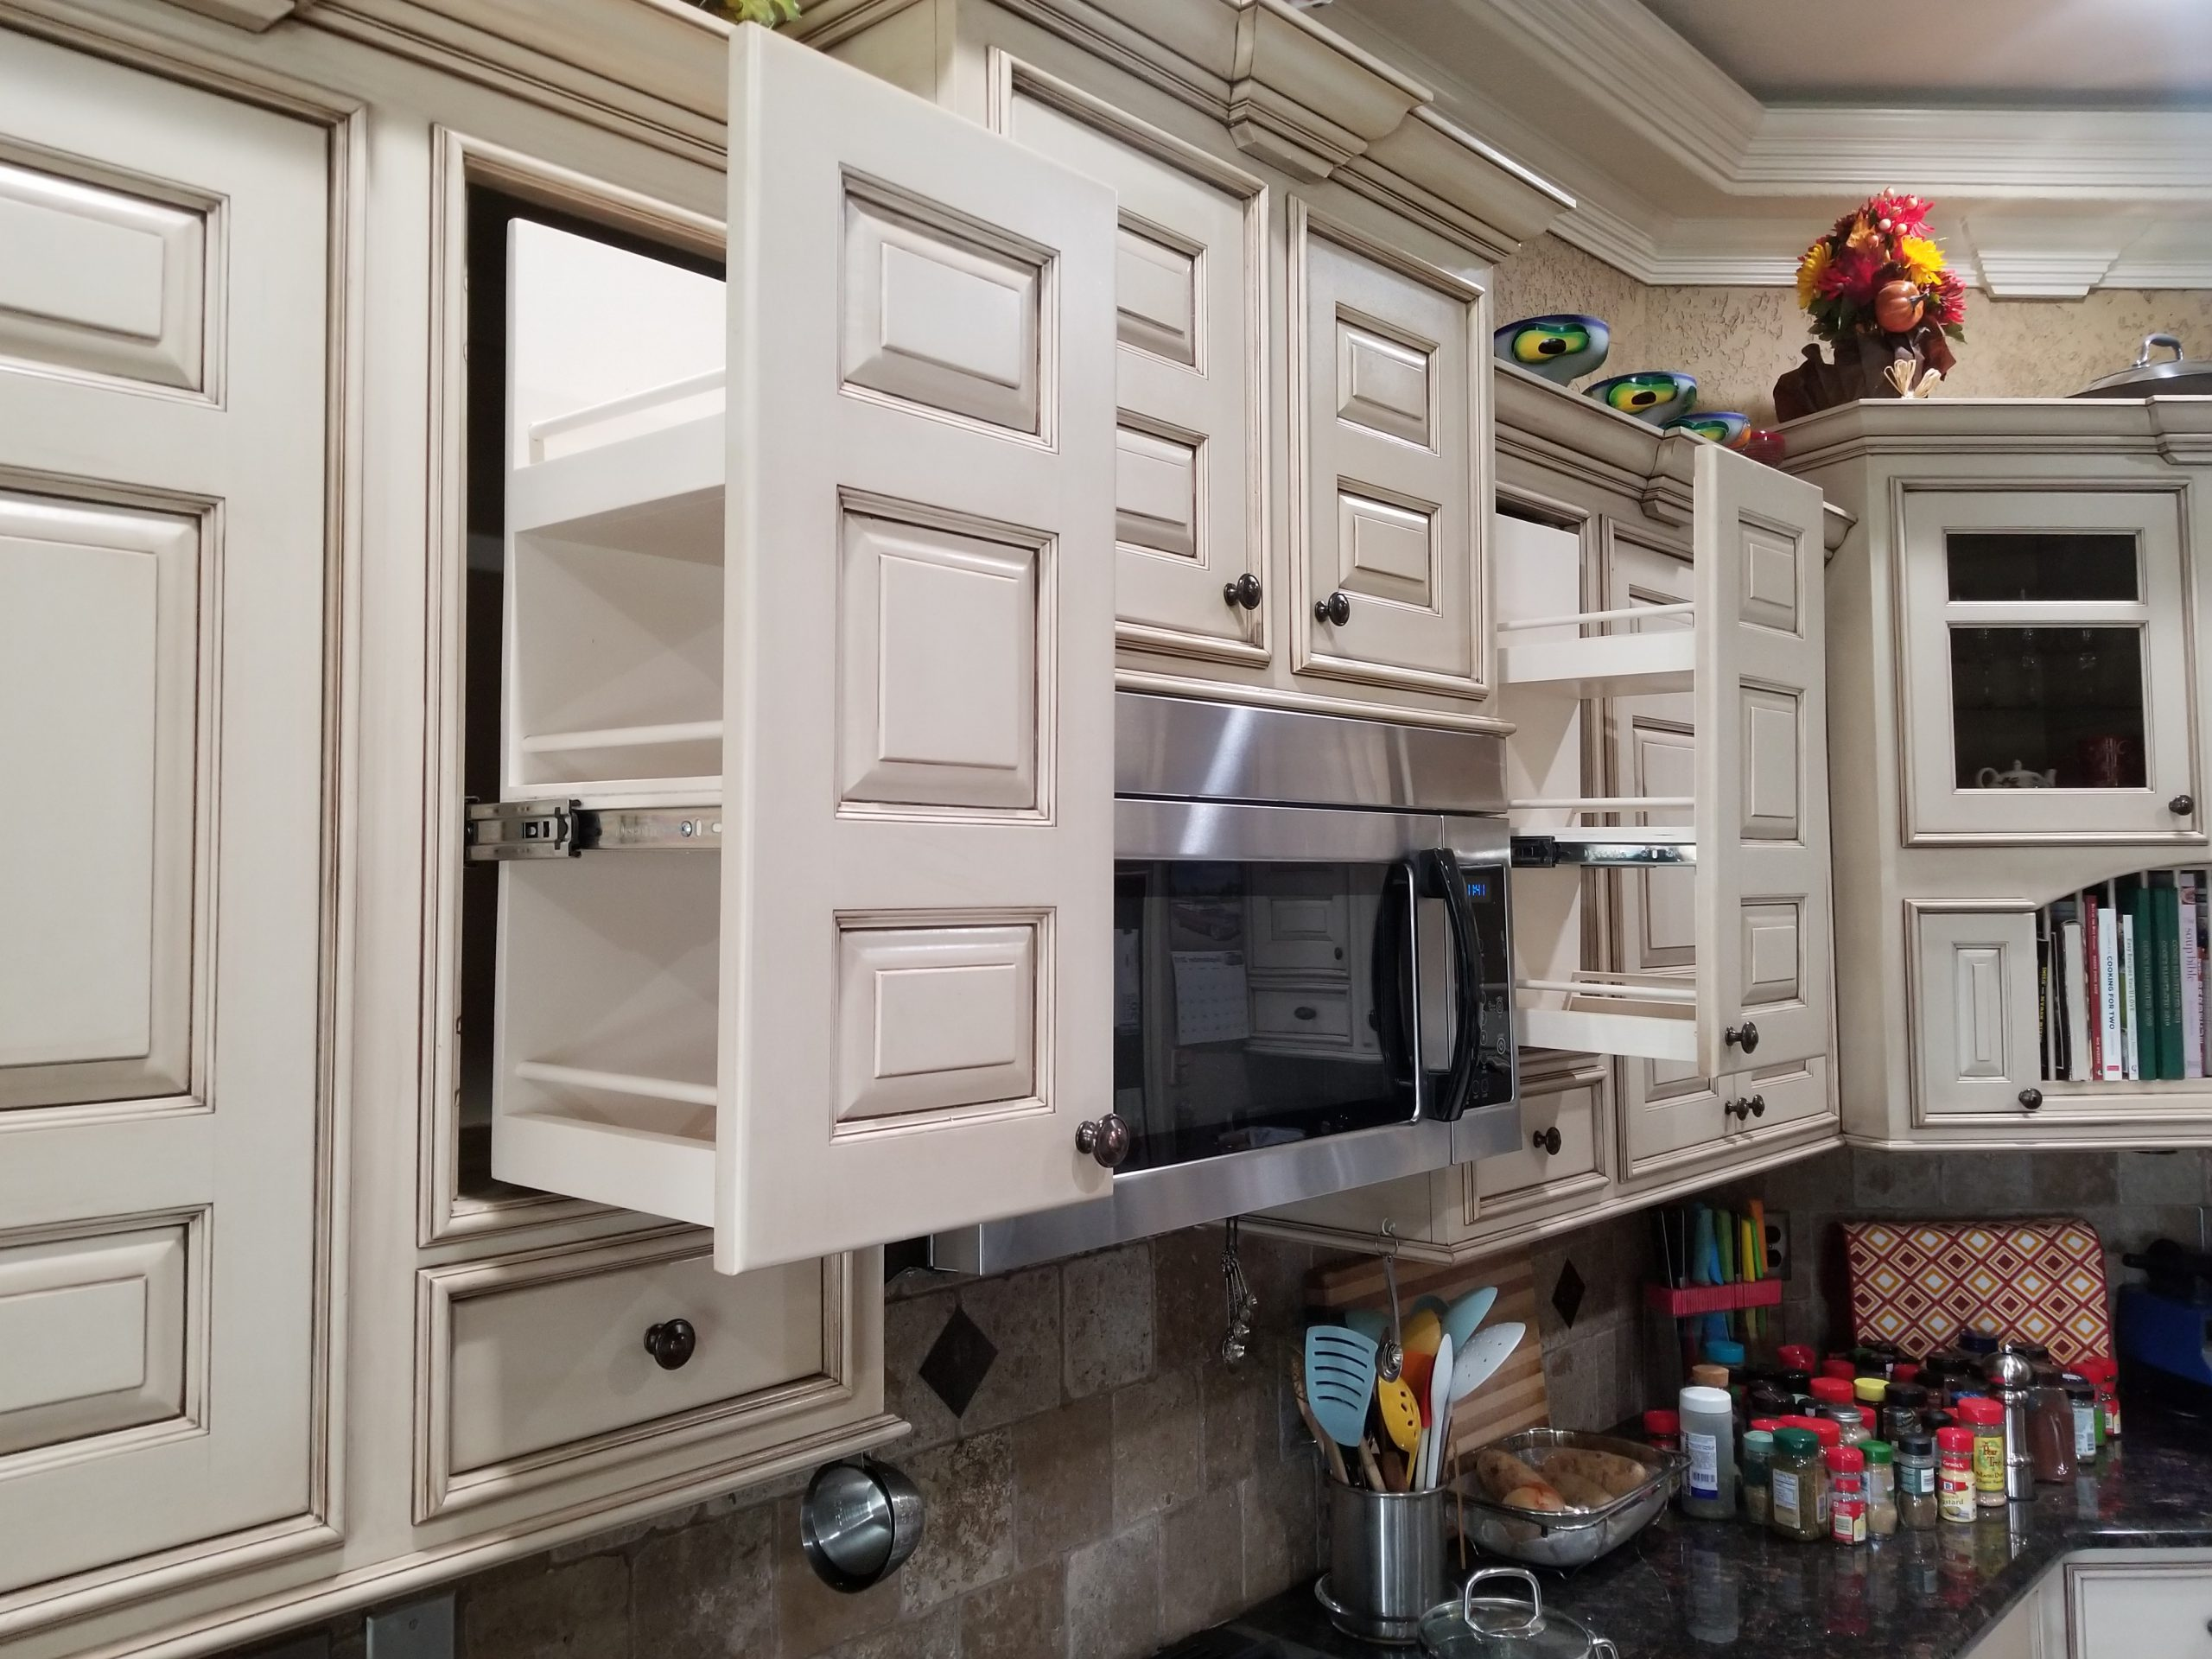 Buy custom traditional kitchen cabinets factory direct in Lavallette NJ, Buy custom slab panel kitchen cabinets factory direct in Lavallette NJ, Buy custom flat panel kitchen cabinets factory direct in Lavallette NJ